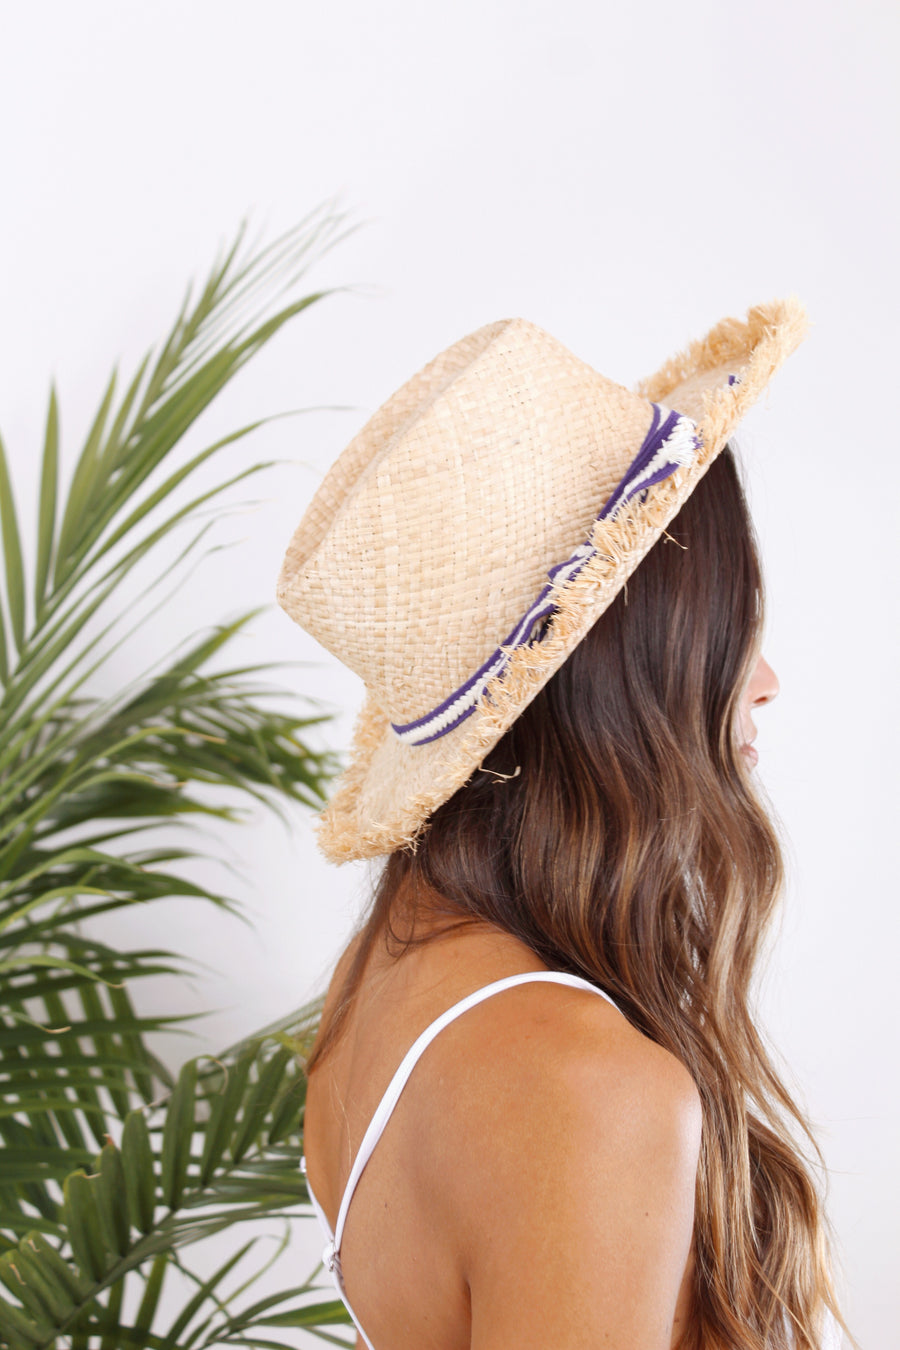 Malibu Ribbon Hat by HatAttack - The Beach Bride by Chic Parisien, a destination for beach weddings, bachelorettes and honeymoons